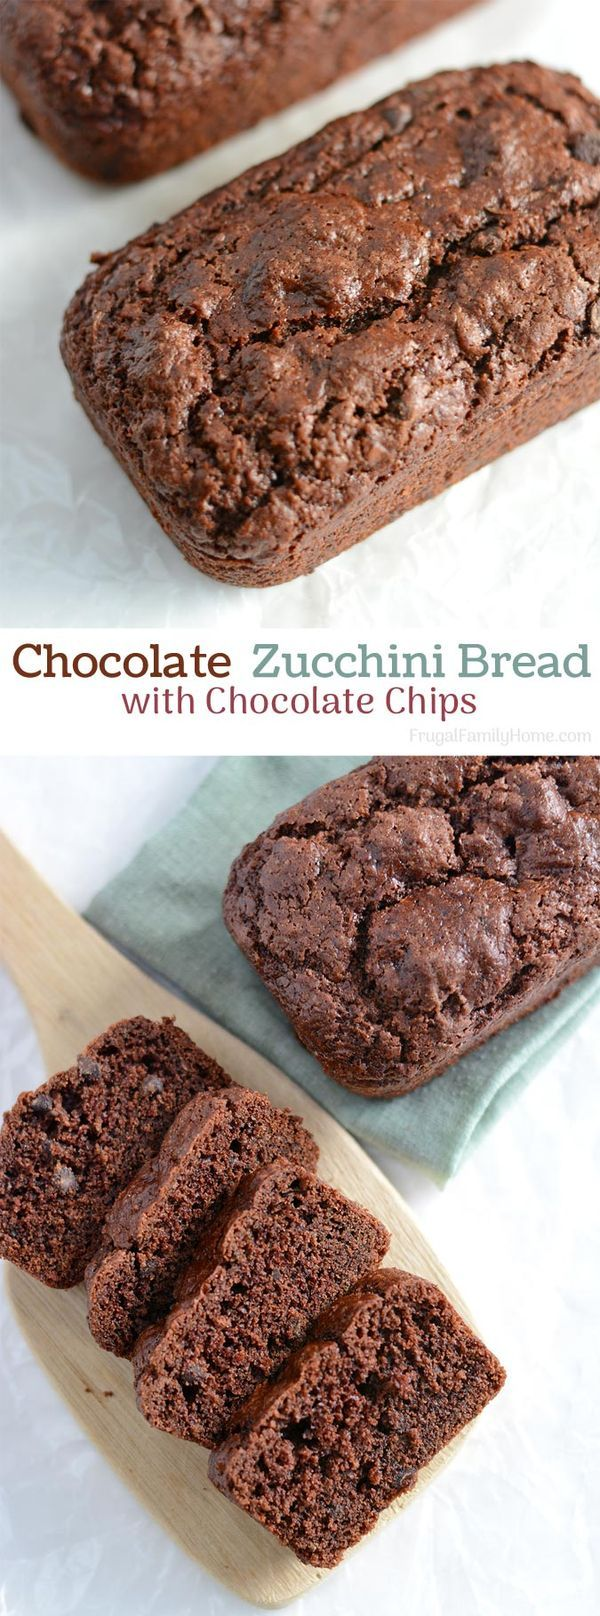 This healthy Double Chocolate Zucchini Bread is such a tasty treat that is so easy to make and dairy-free!